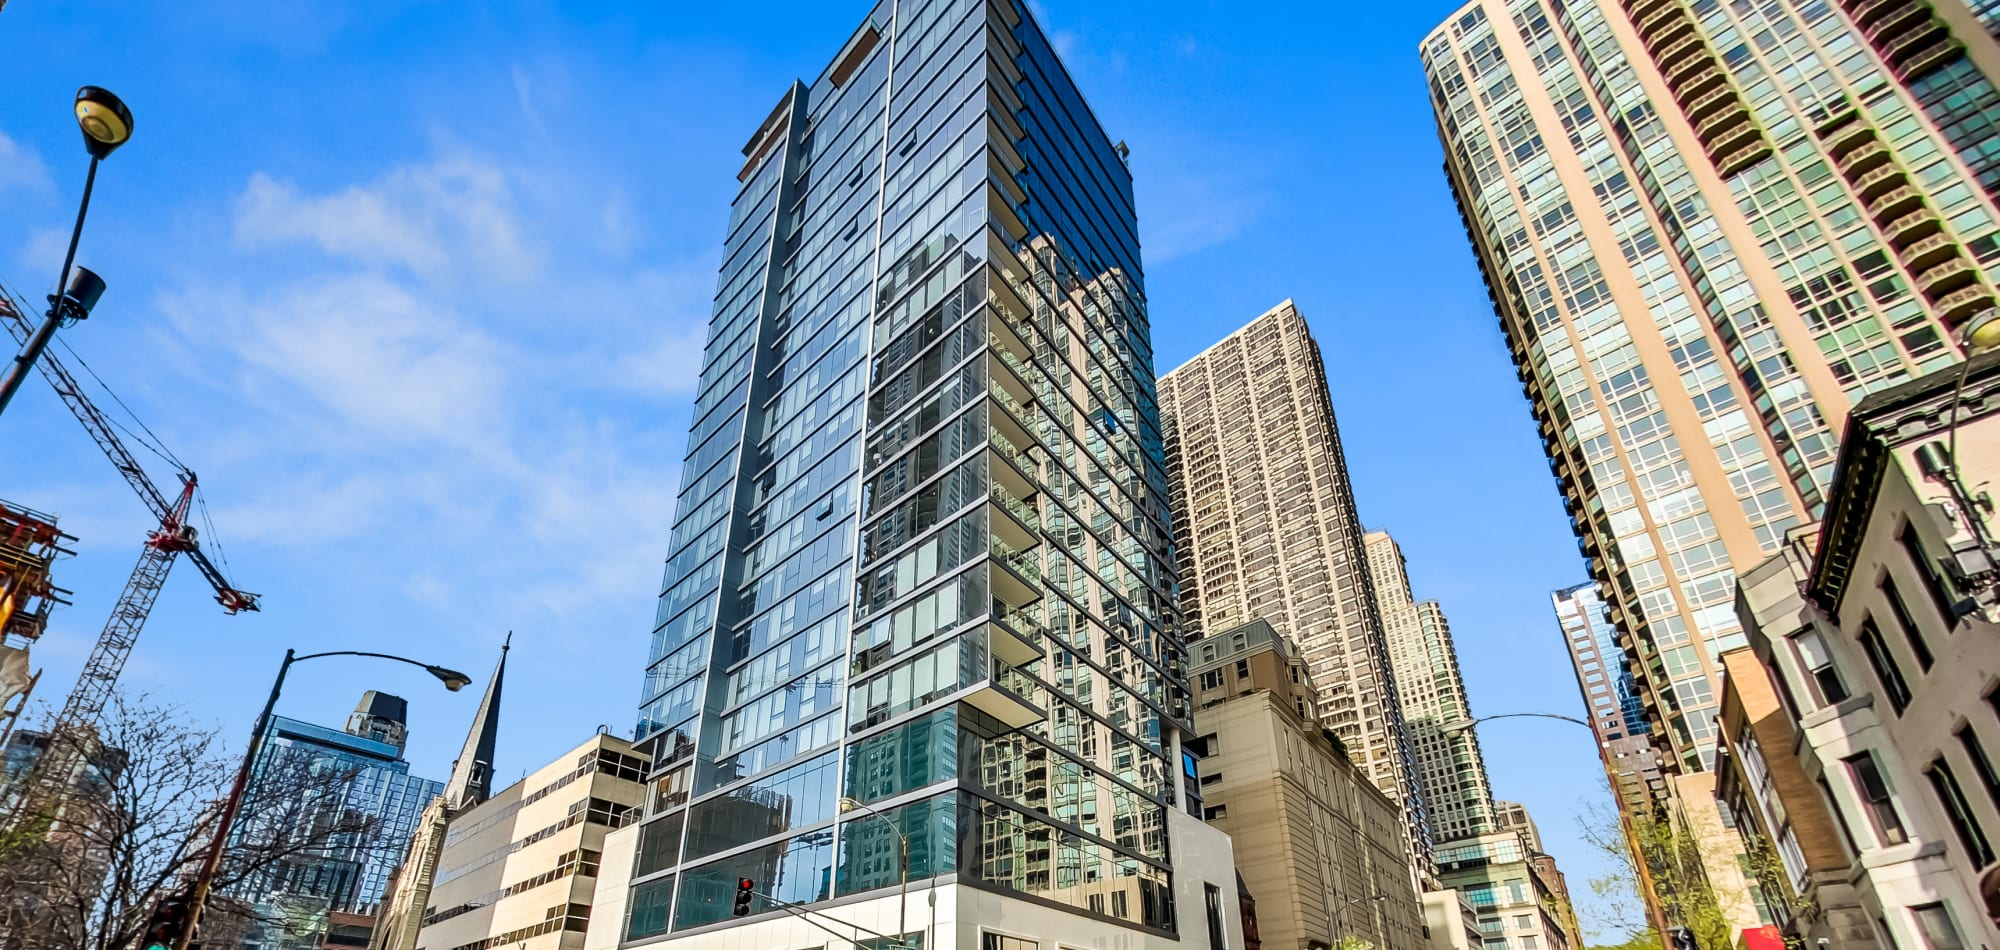 Enjoy our exceptional luxury apartments at Residences at 8 East Huron in Chicago, Illinois